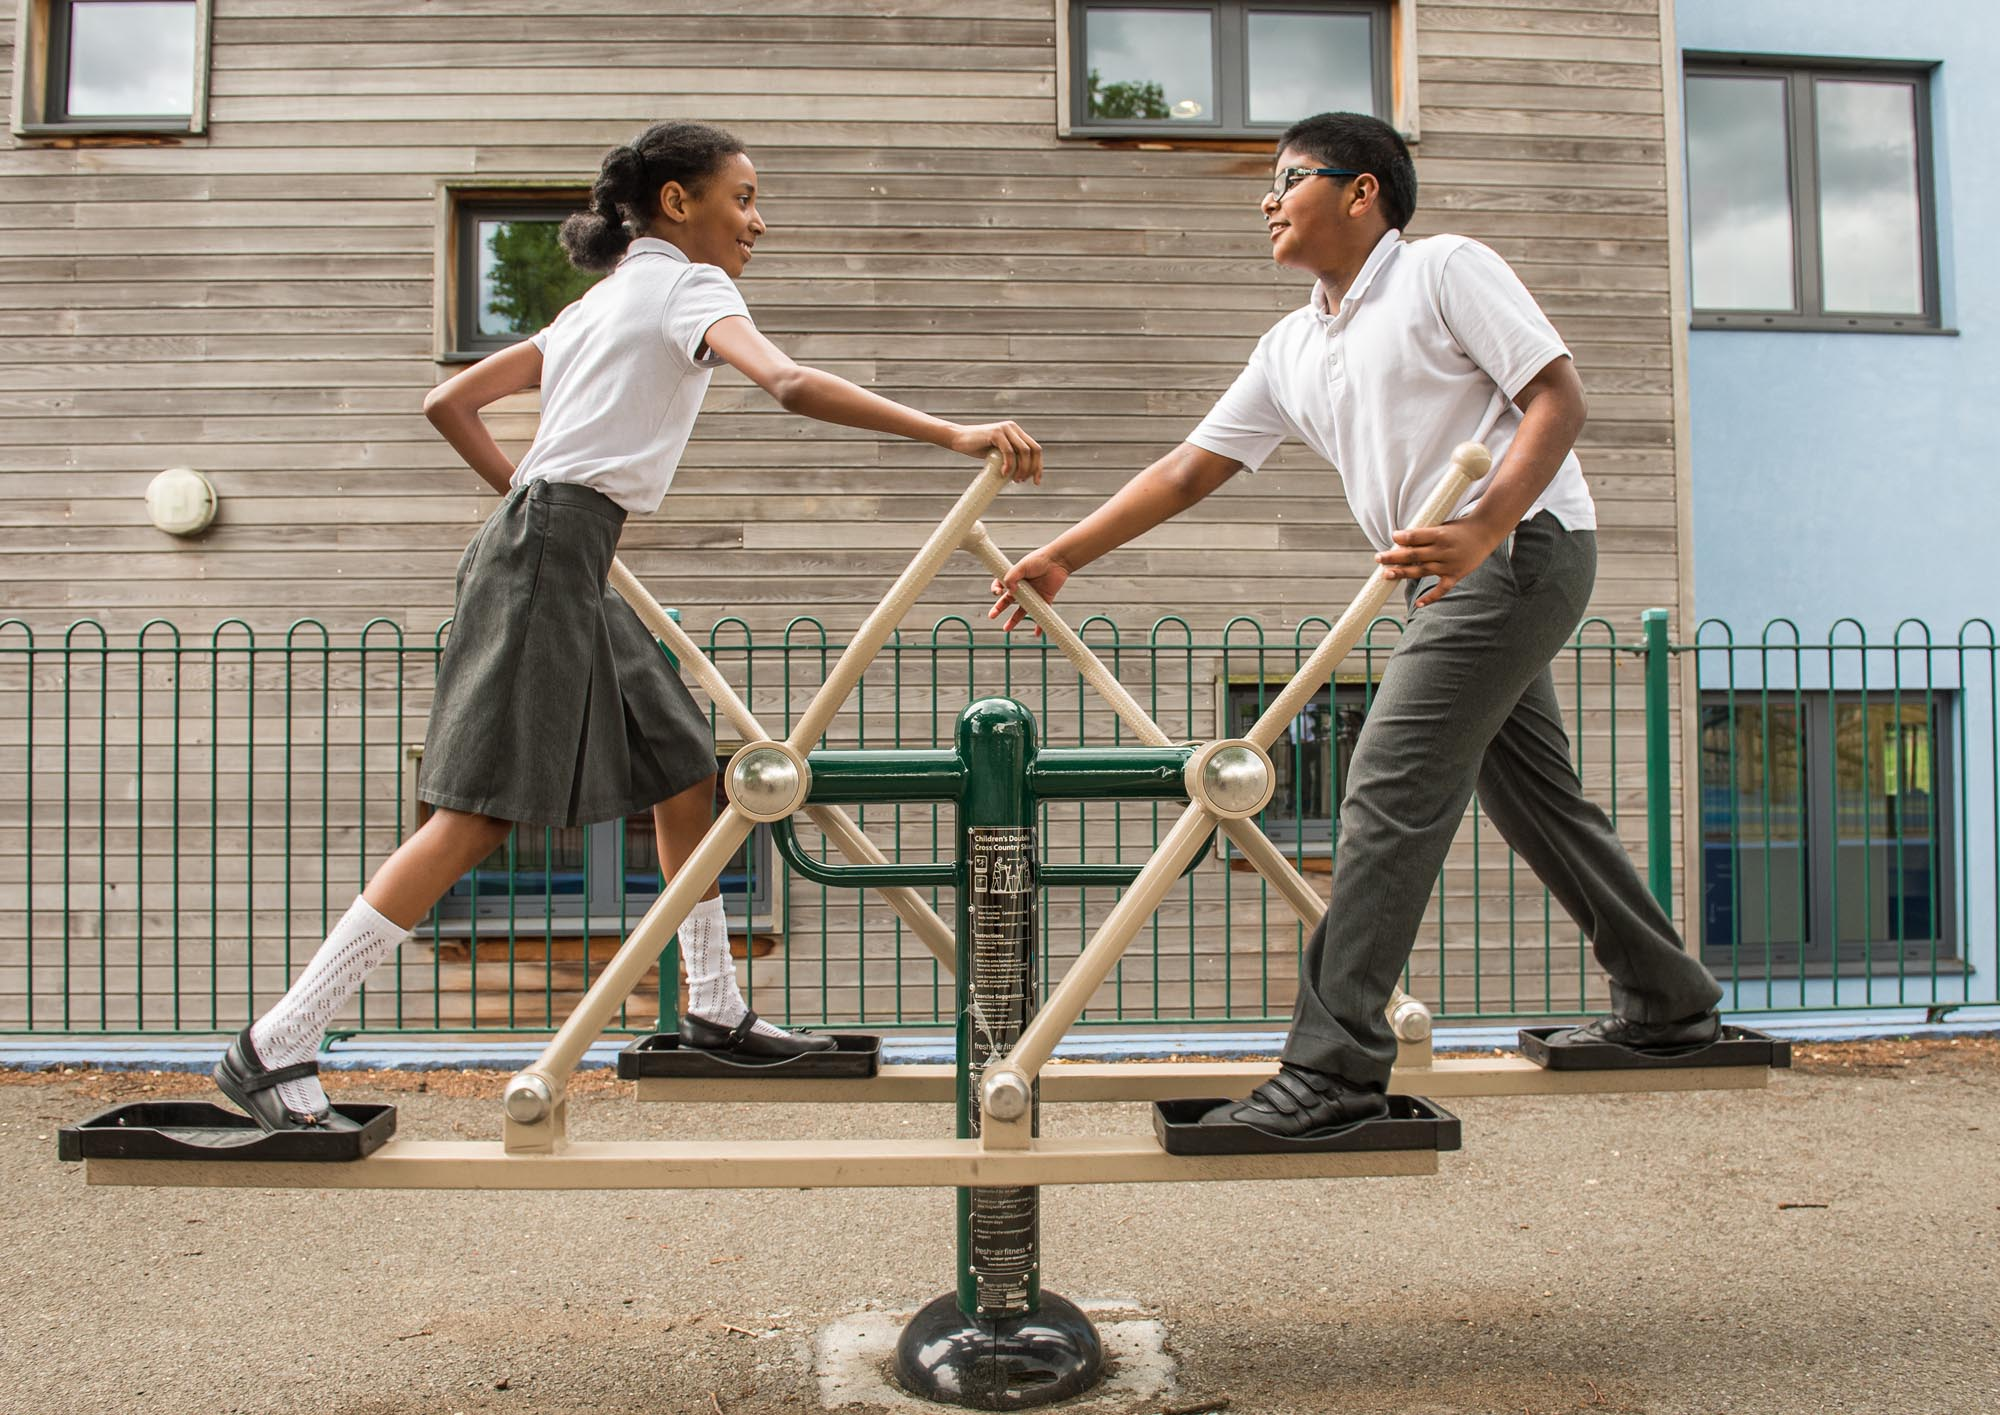 Boy and girl exercising on outdoor gym